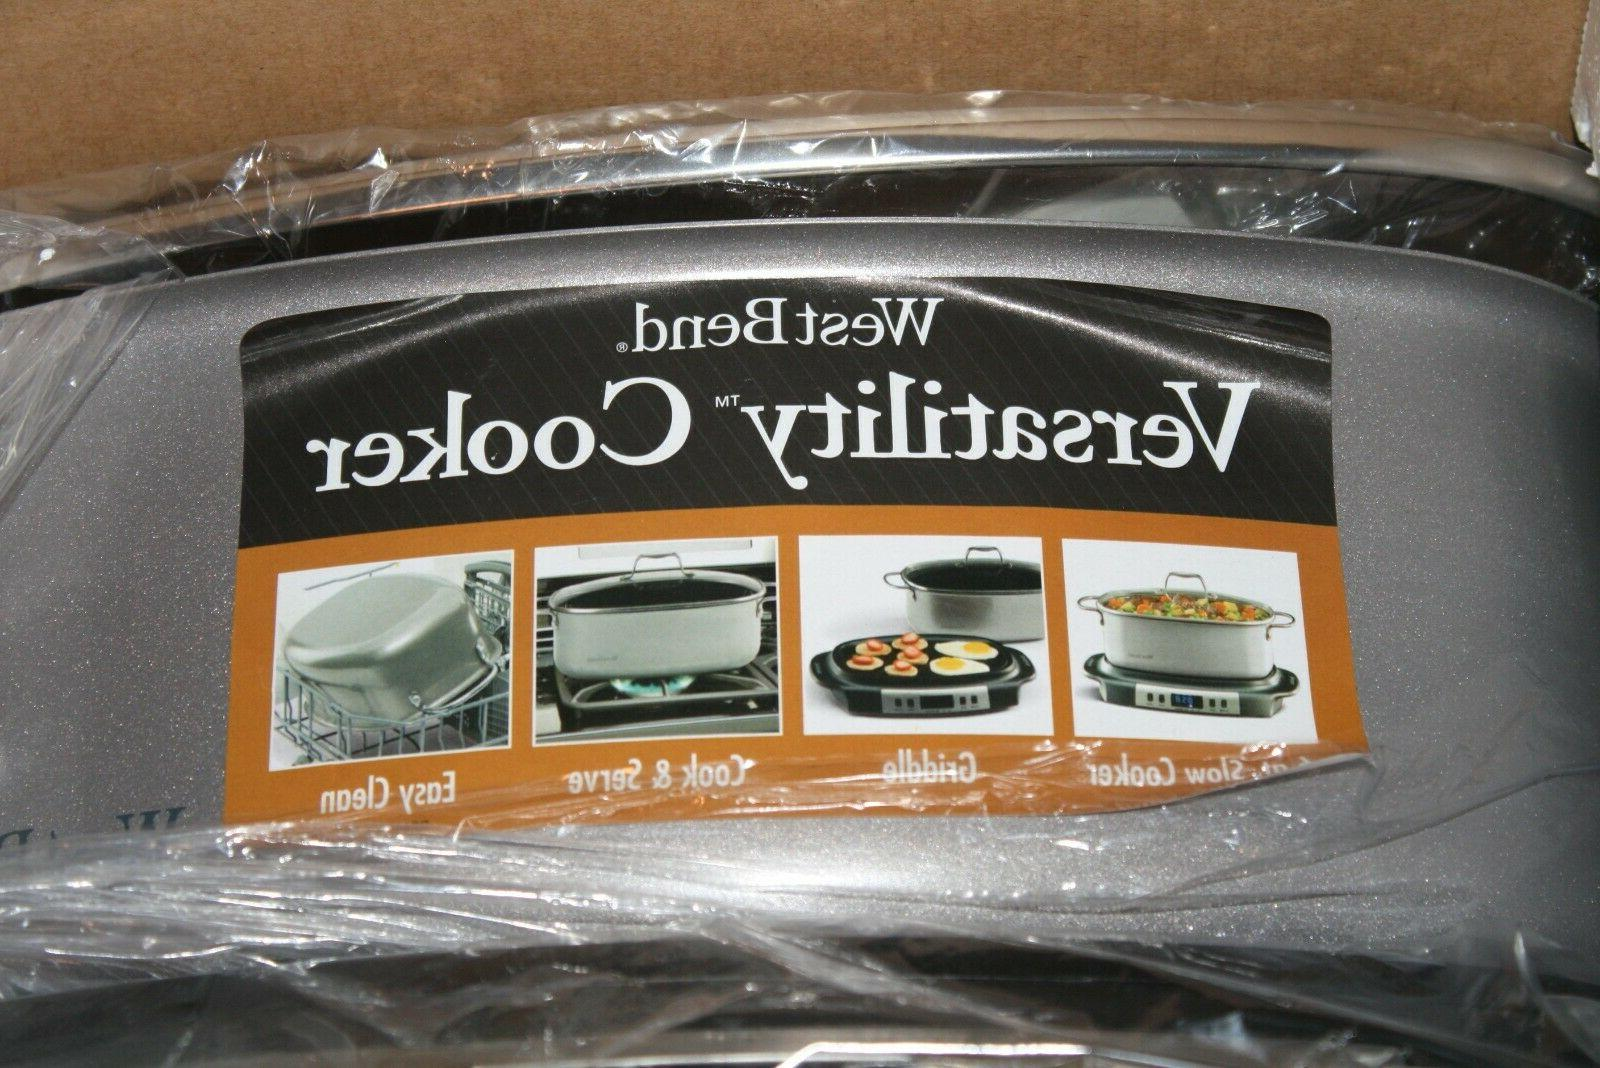 West Bend Oval-Shaped Programmable Slow Cooker